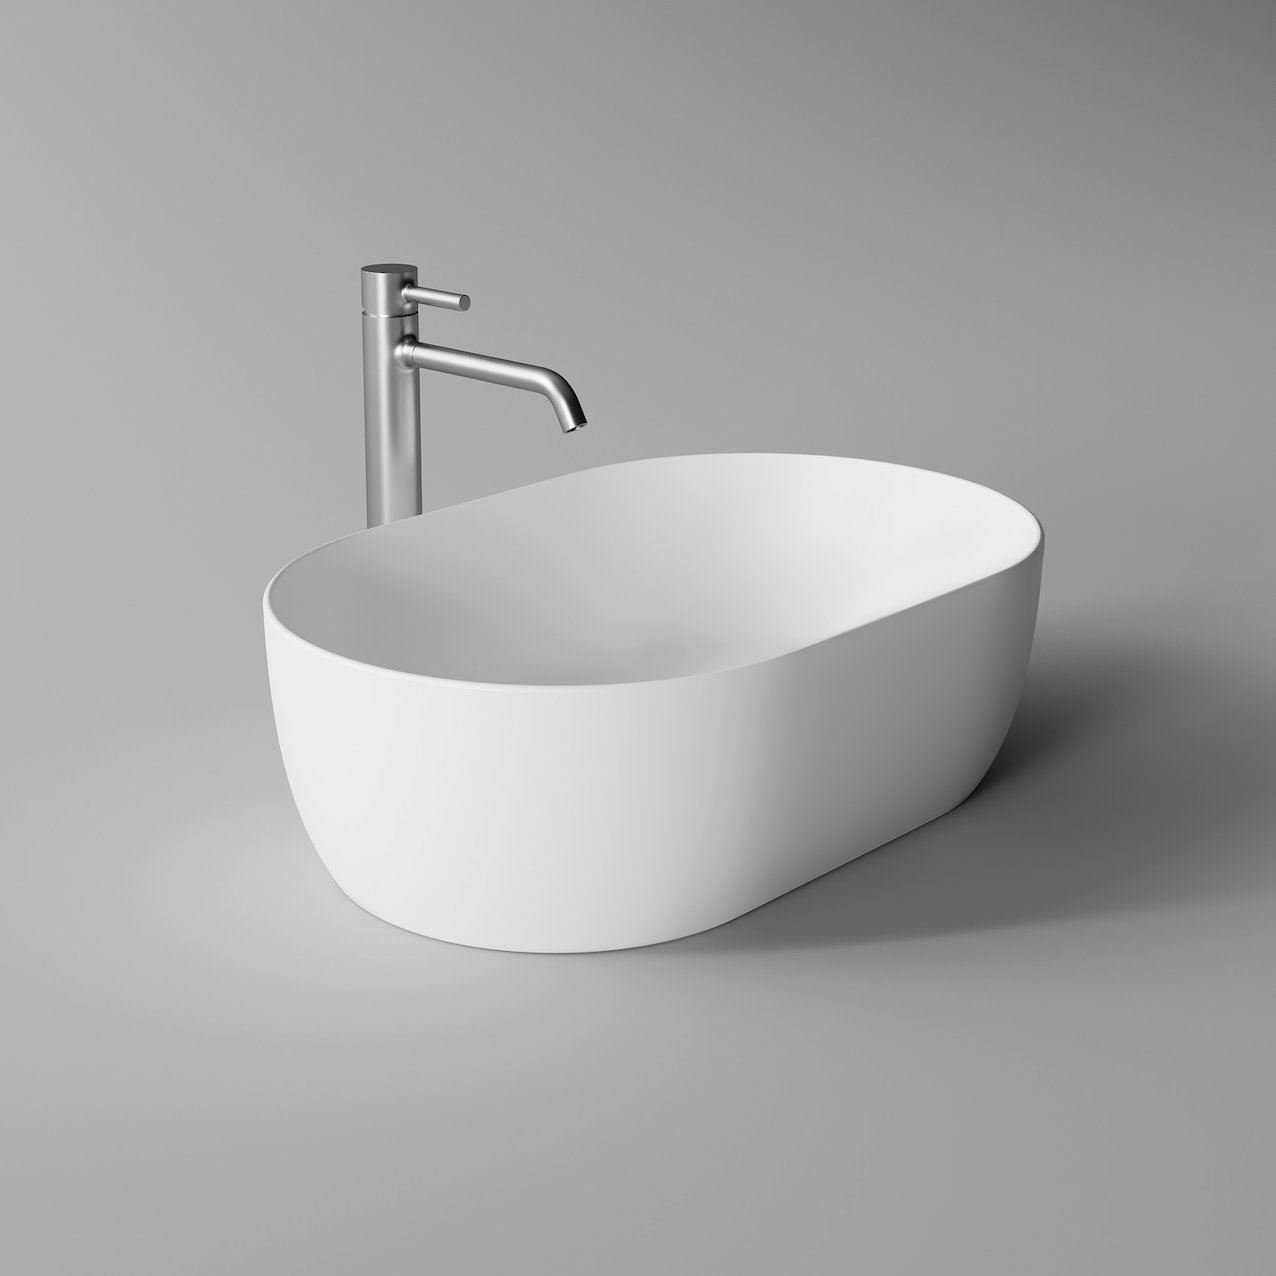 Washbasin UNICA oval 55